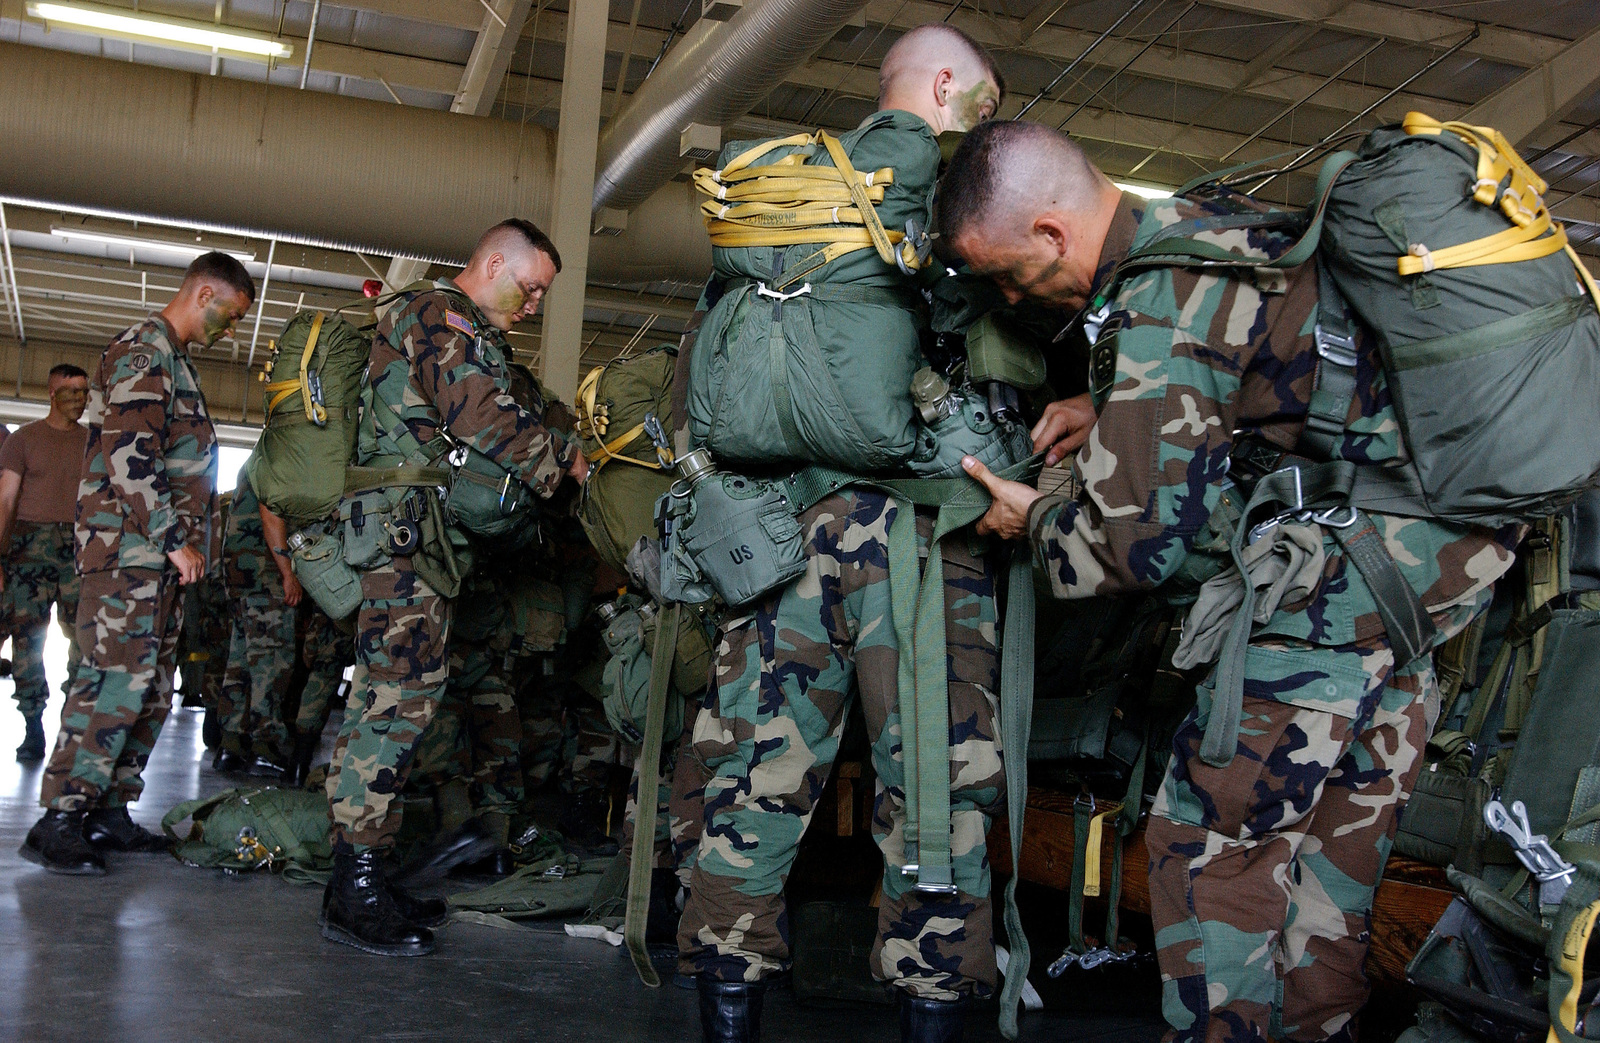 US Army (USA) Jumpmasters check their paratroopers chutes prior to an airdrop during exercise Large Package Week at Pope Air Force Base (AFB), North Carolina (NC). Large Package Week is a joint US Army and US Air Force airdrop, designed to enhance service cohesiveness